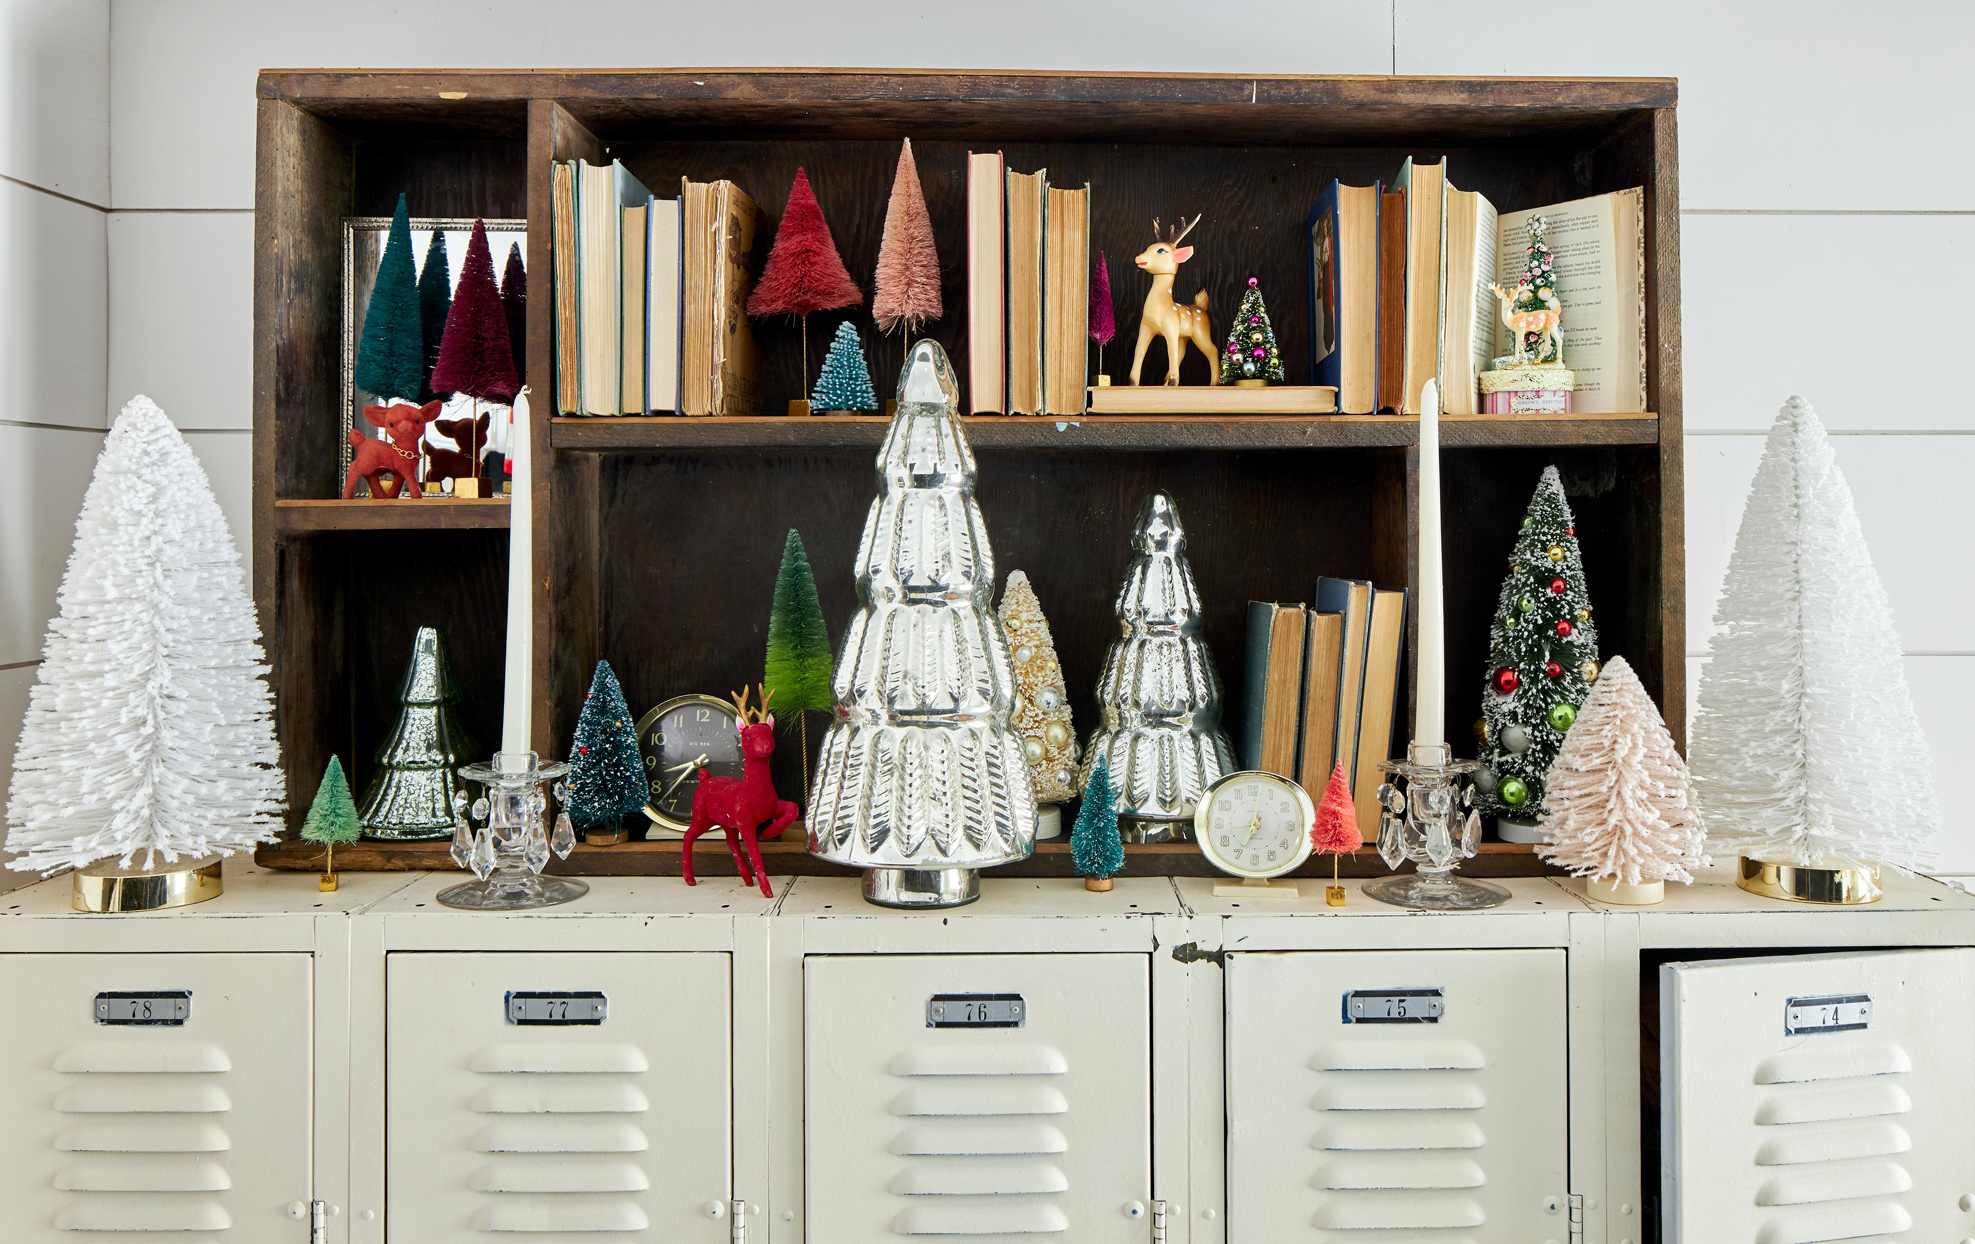 christmas tree decor on book shelf and lockers